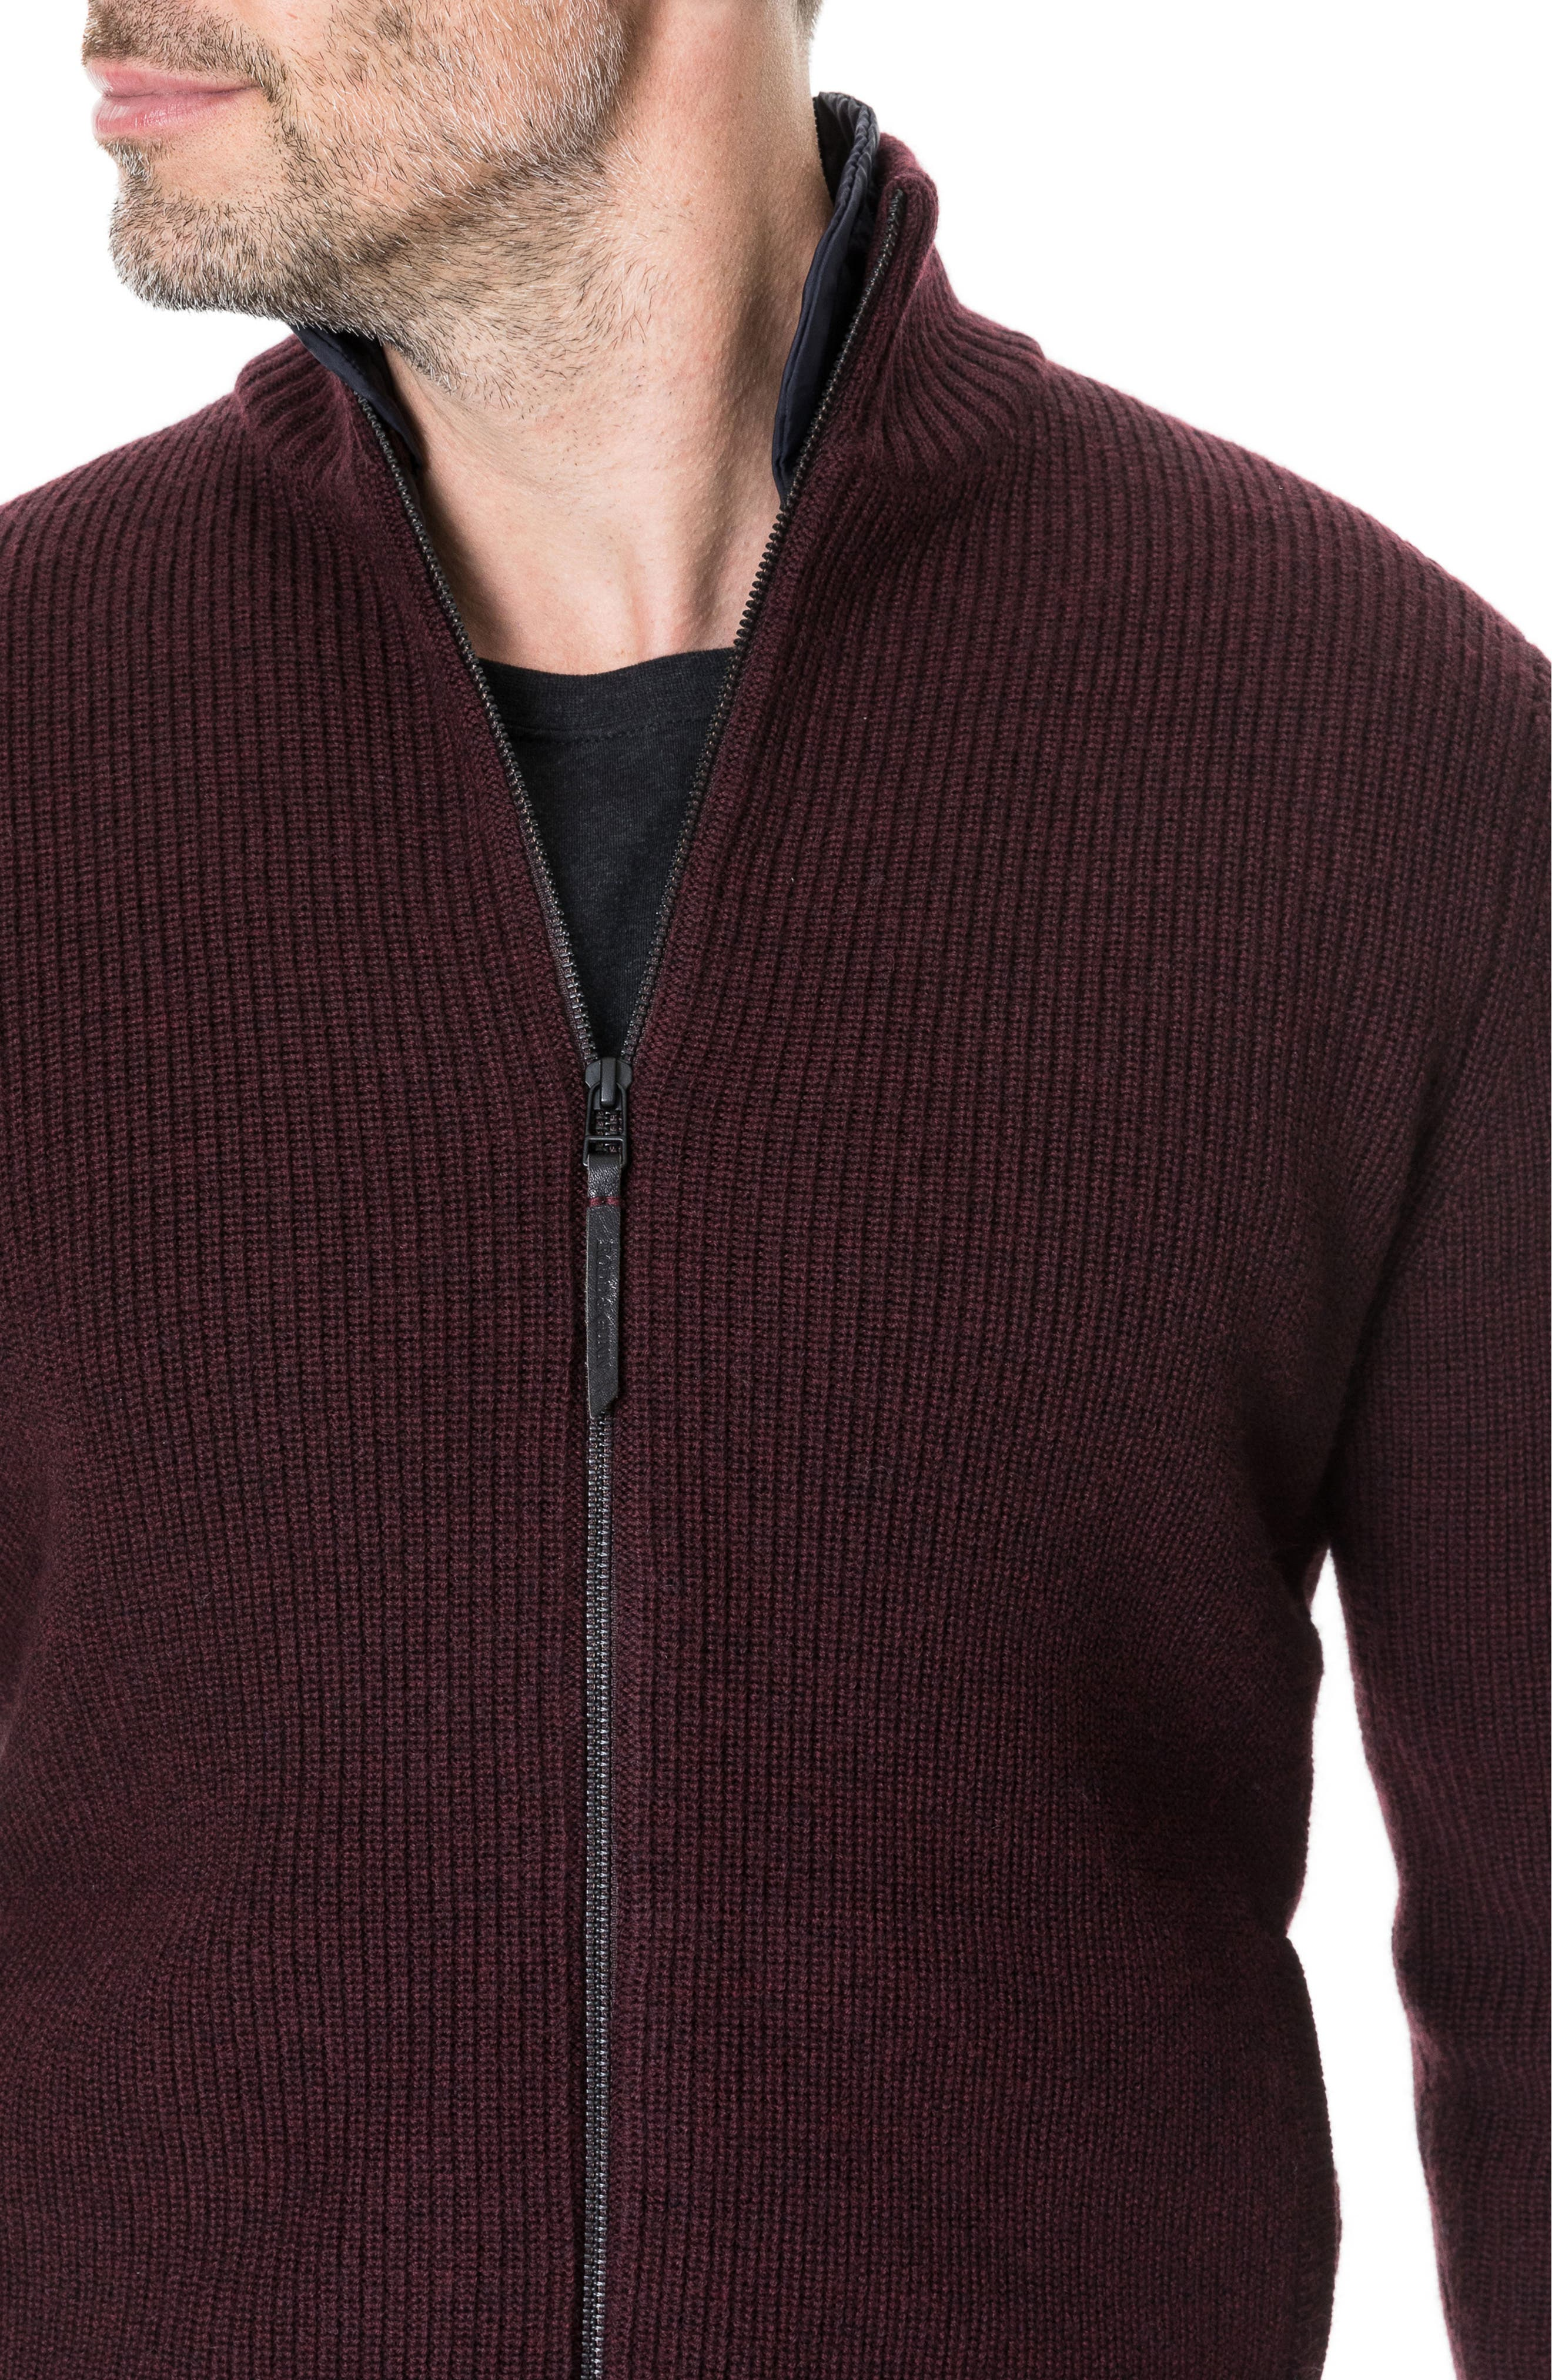 Camerons Track Zip Wool Sweater,                             Alternate thumbnail 4, color,                             BURGUNDY